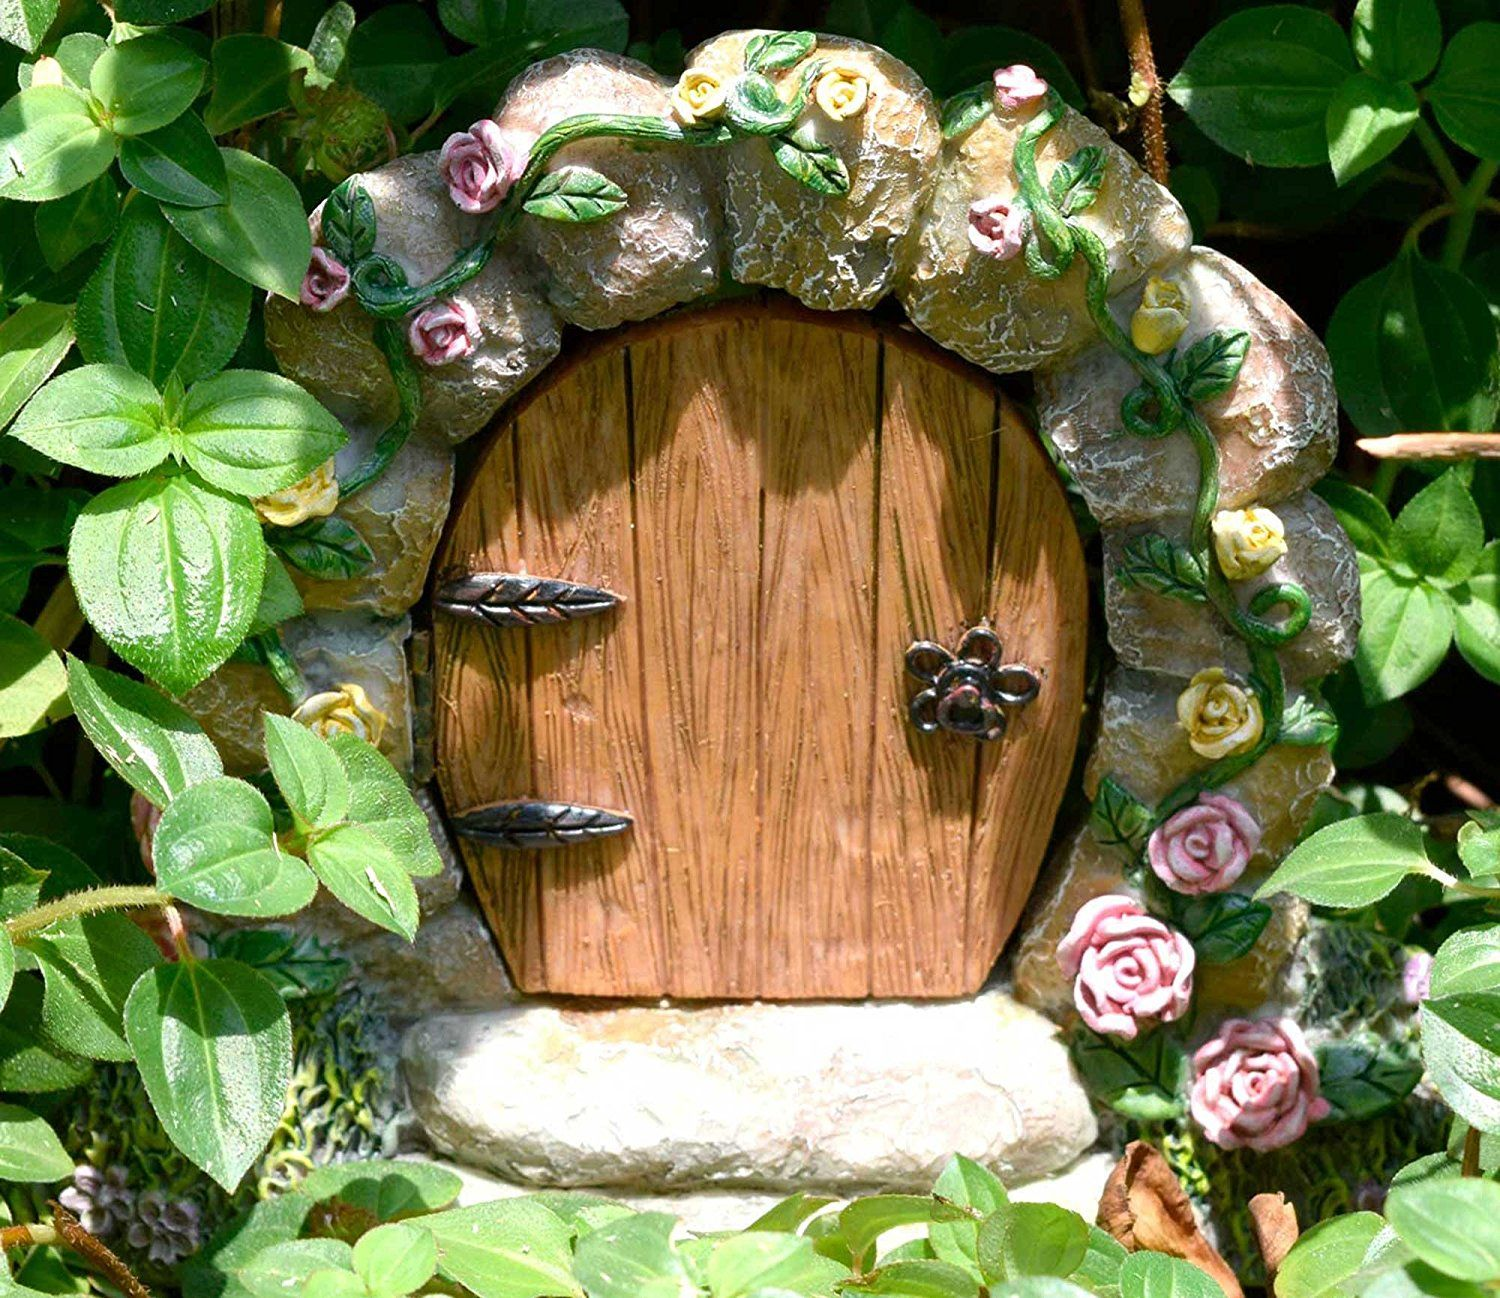 Miniature Fairy Garden Gnome Home Door (That Opens) with Hand Painted Flowers, Vines, Moss, Care and Cuteness by Twig & Flower.